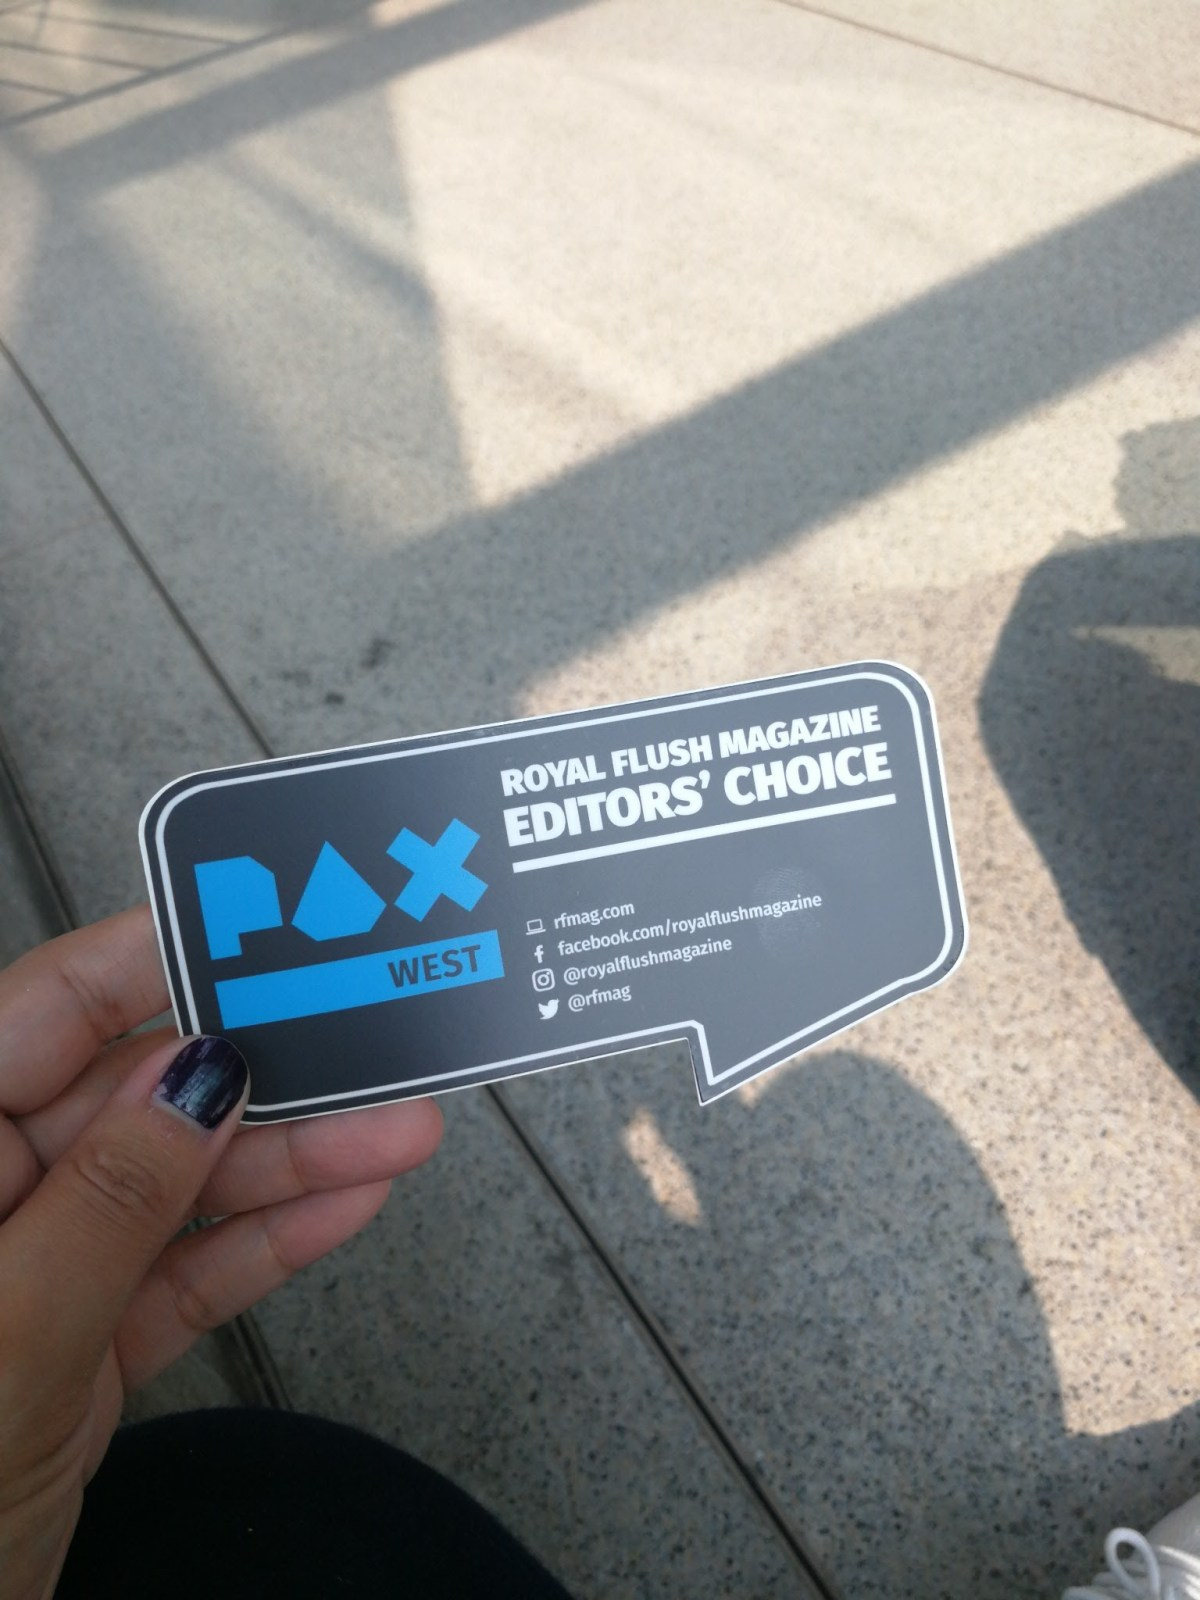 PAX West 2017 Editor's Choice